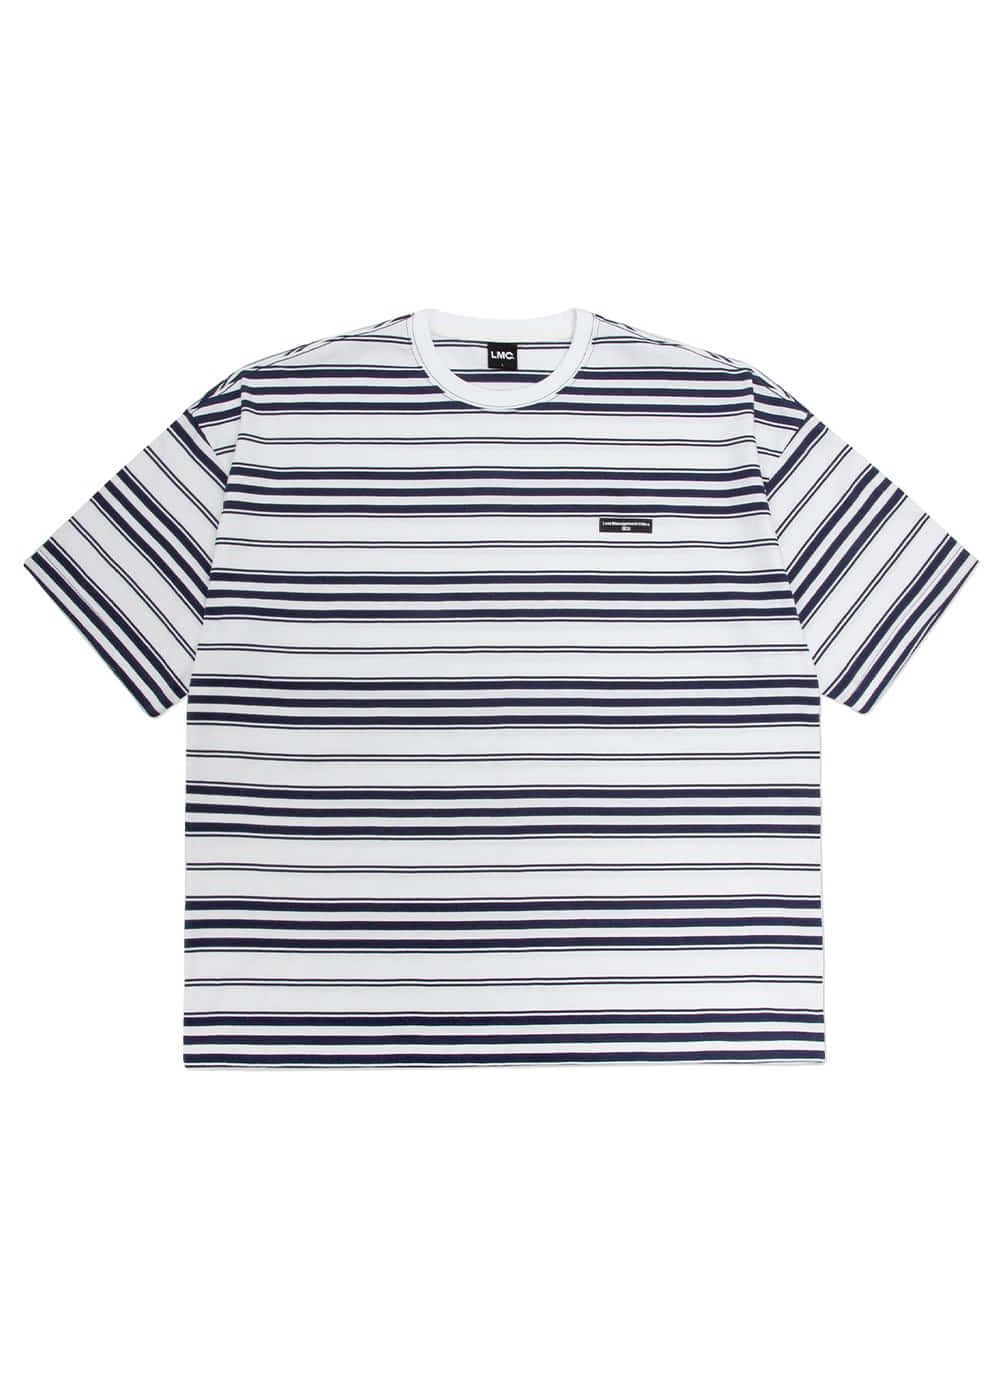 LMC FN MULTI STRIPE OVERSIZED TEE white